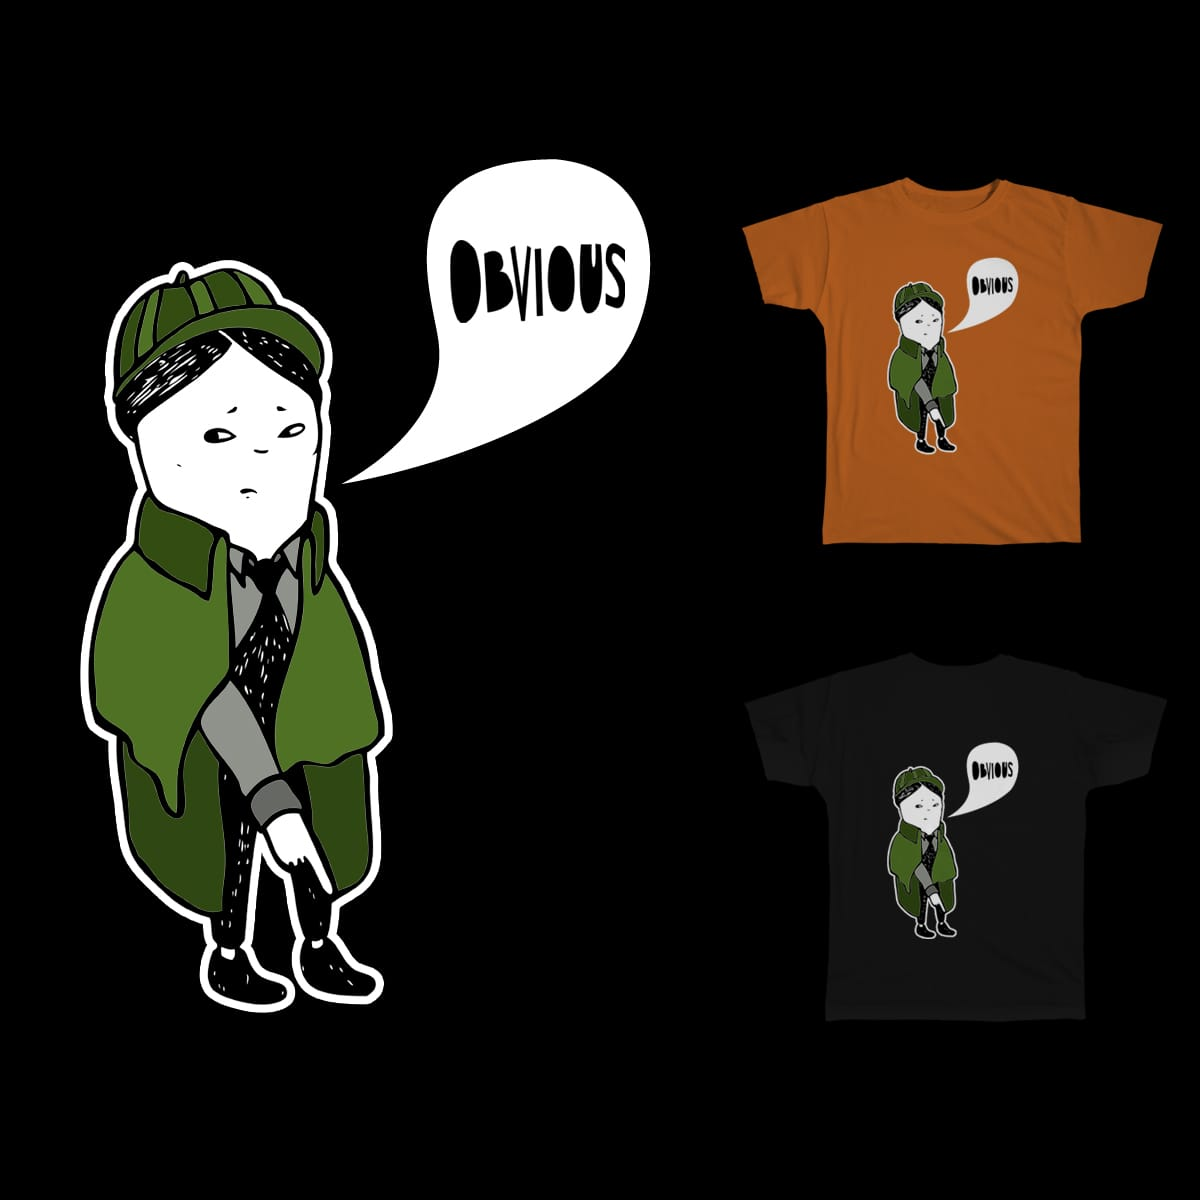 Obvious by charliemisery on Threadless